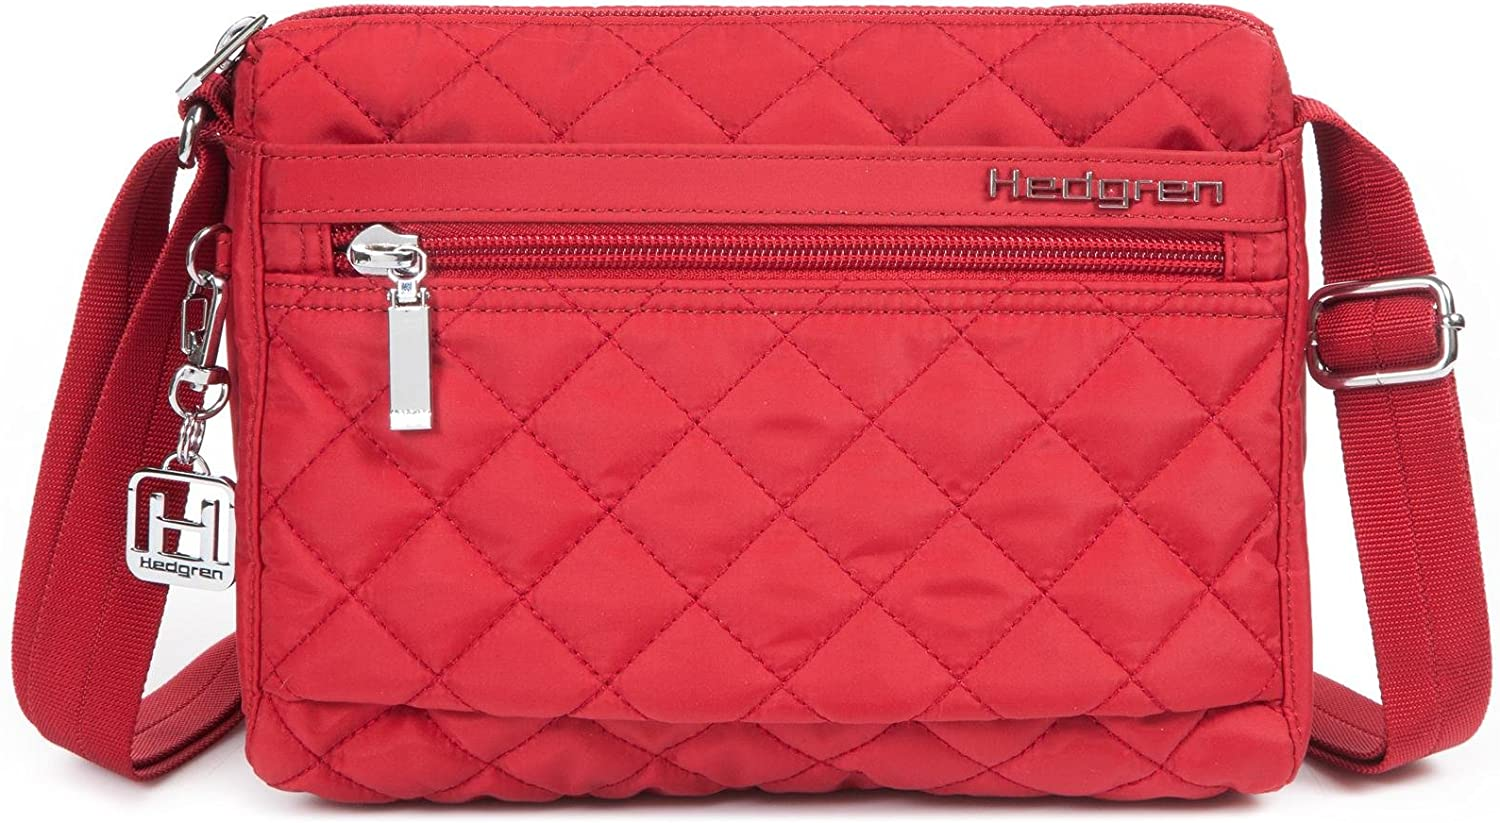 Hedgren Carina Crossbody Shoulder Bag, Purse with Adjustable Strap and 5 Pockets, 9 x 3.5 x 7 Inches, Womens, New Bull Red